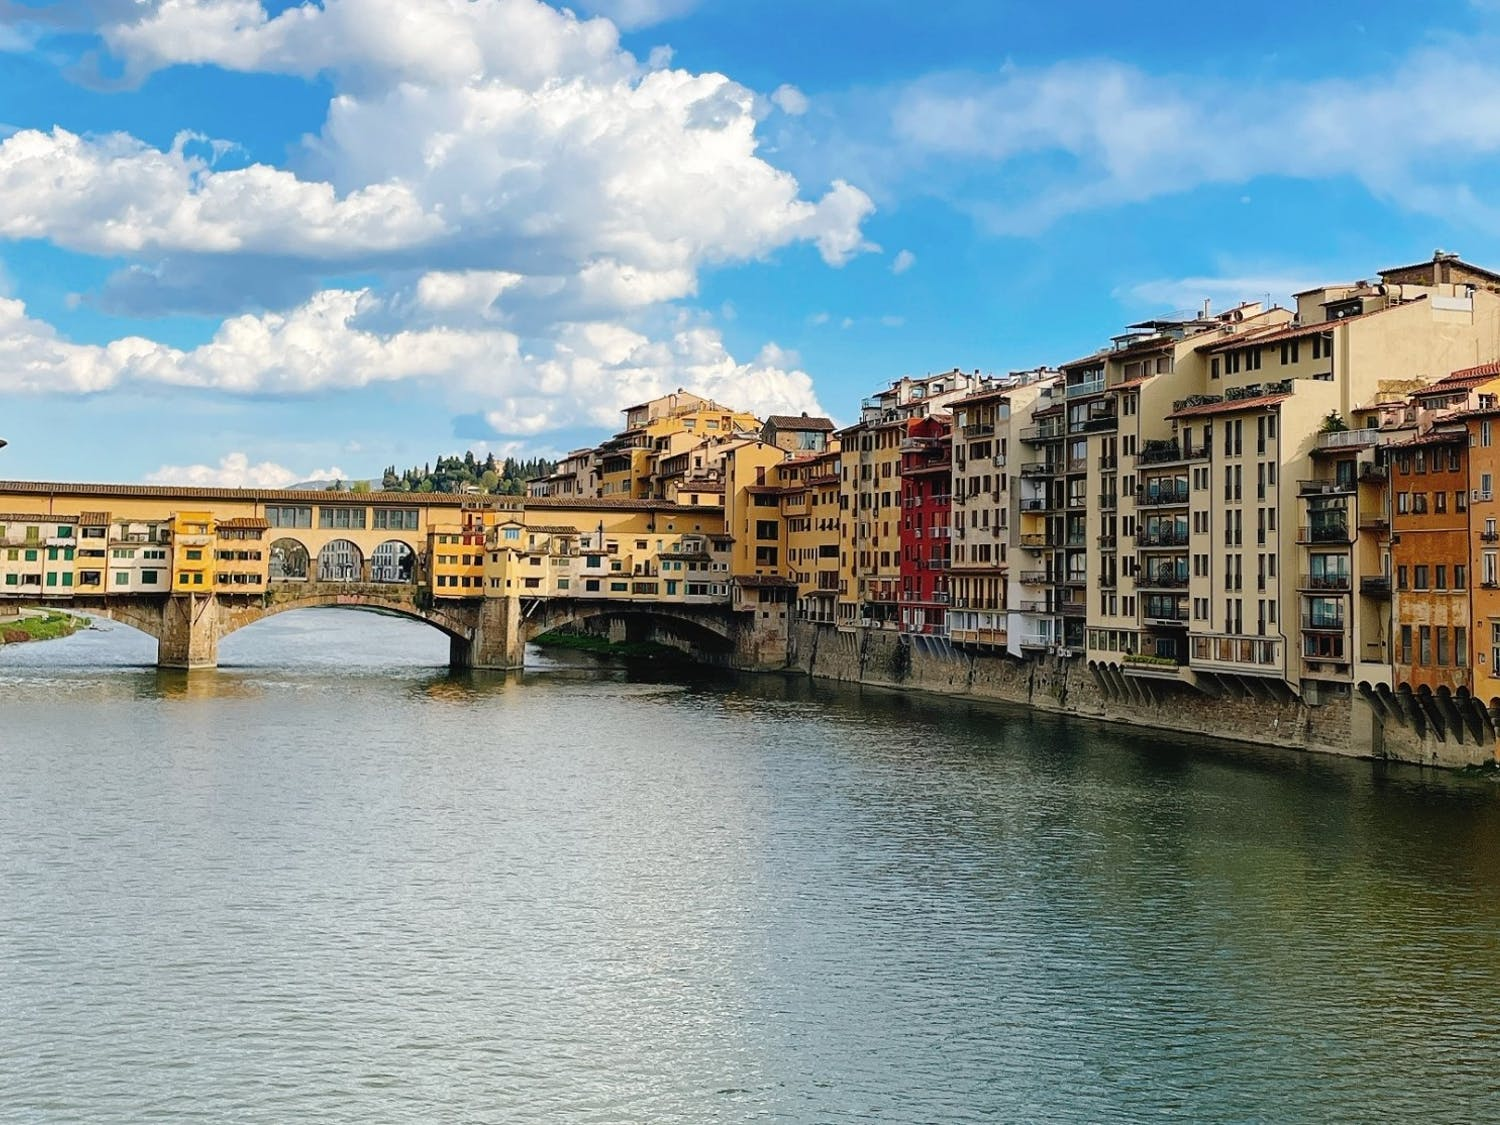 A canal in Florence, Italy, that is faced by buildings on each side and has a bridge to let pedestrians cross the canal.